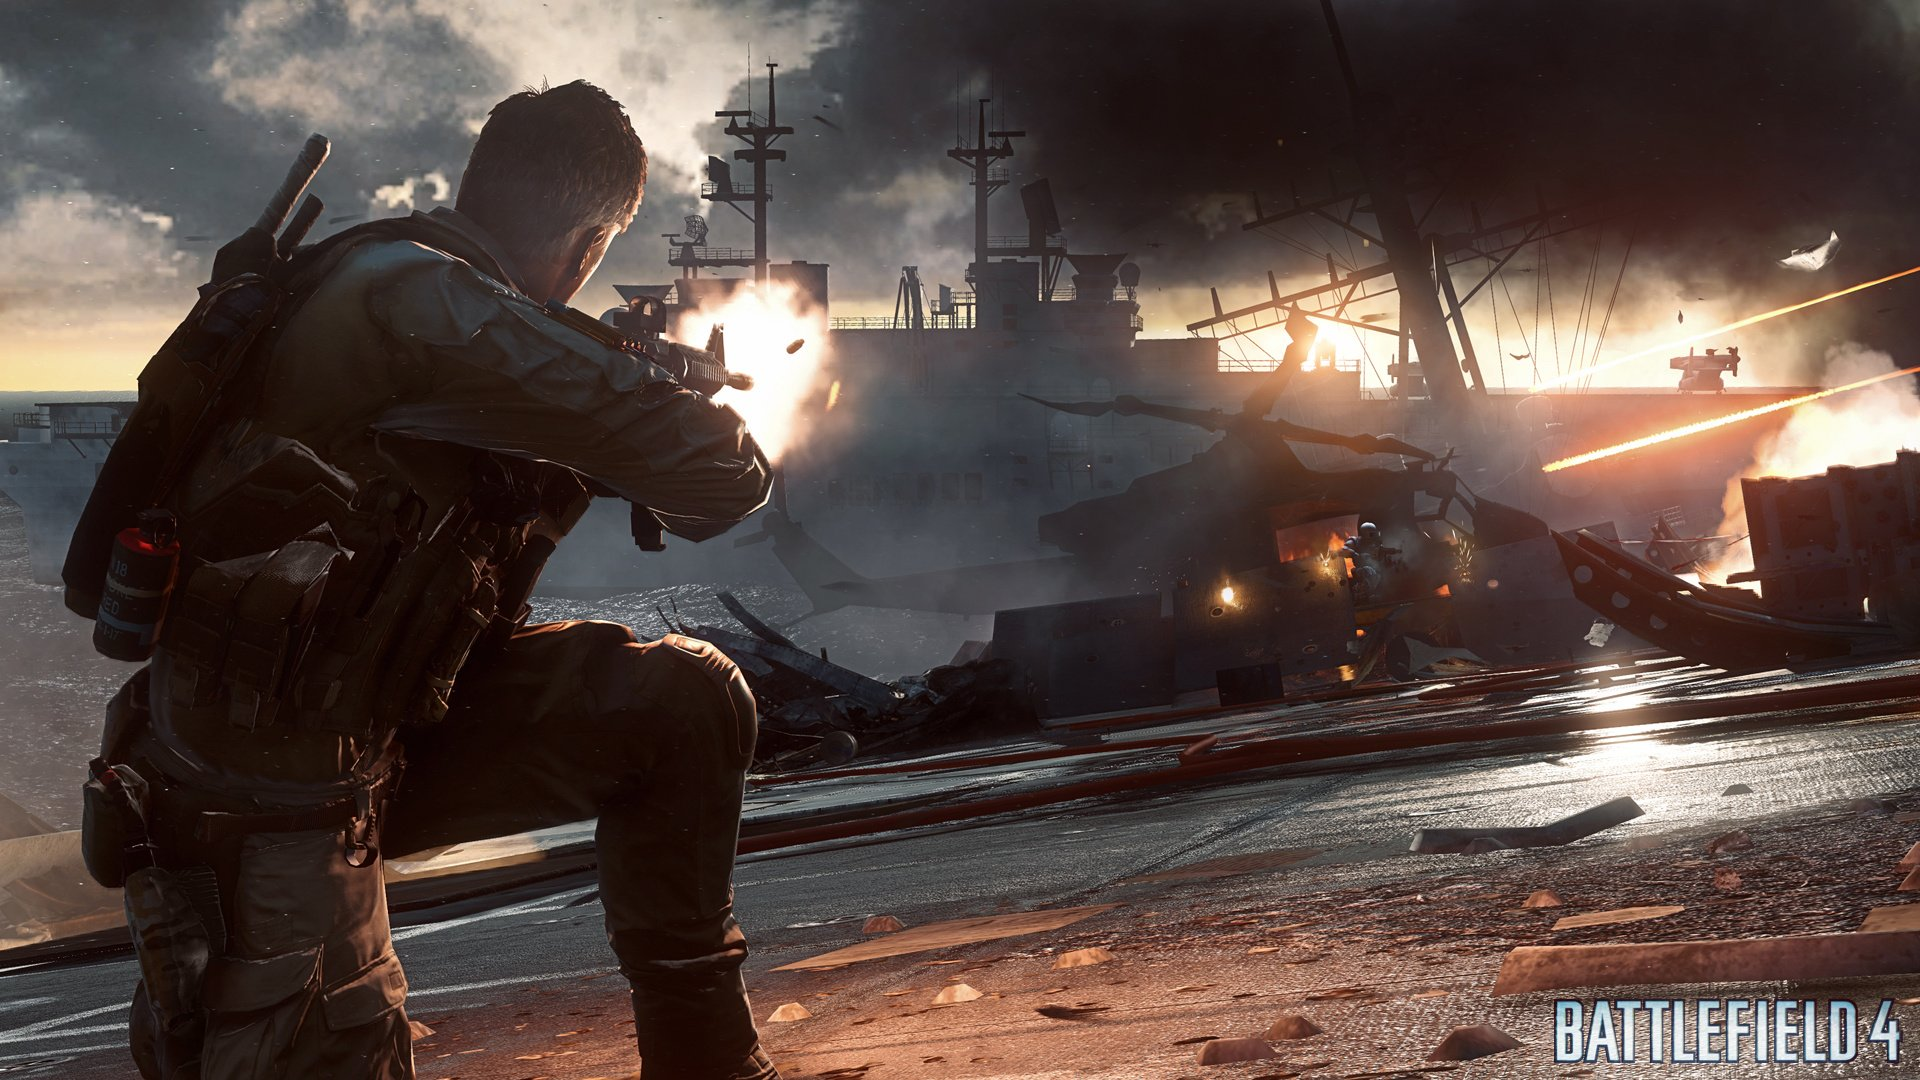 Battlefield 4 Ps4 Playstation 4 News Reviews Trailer